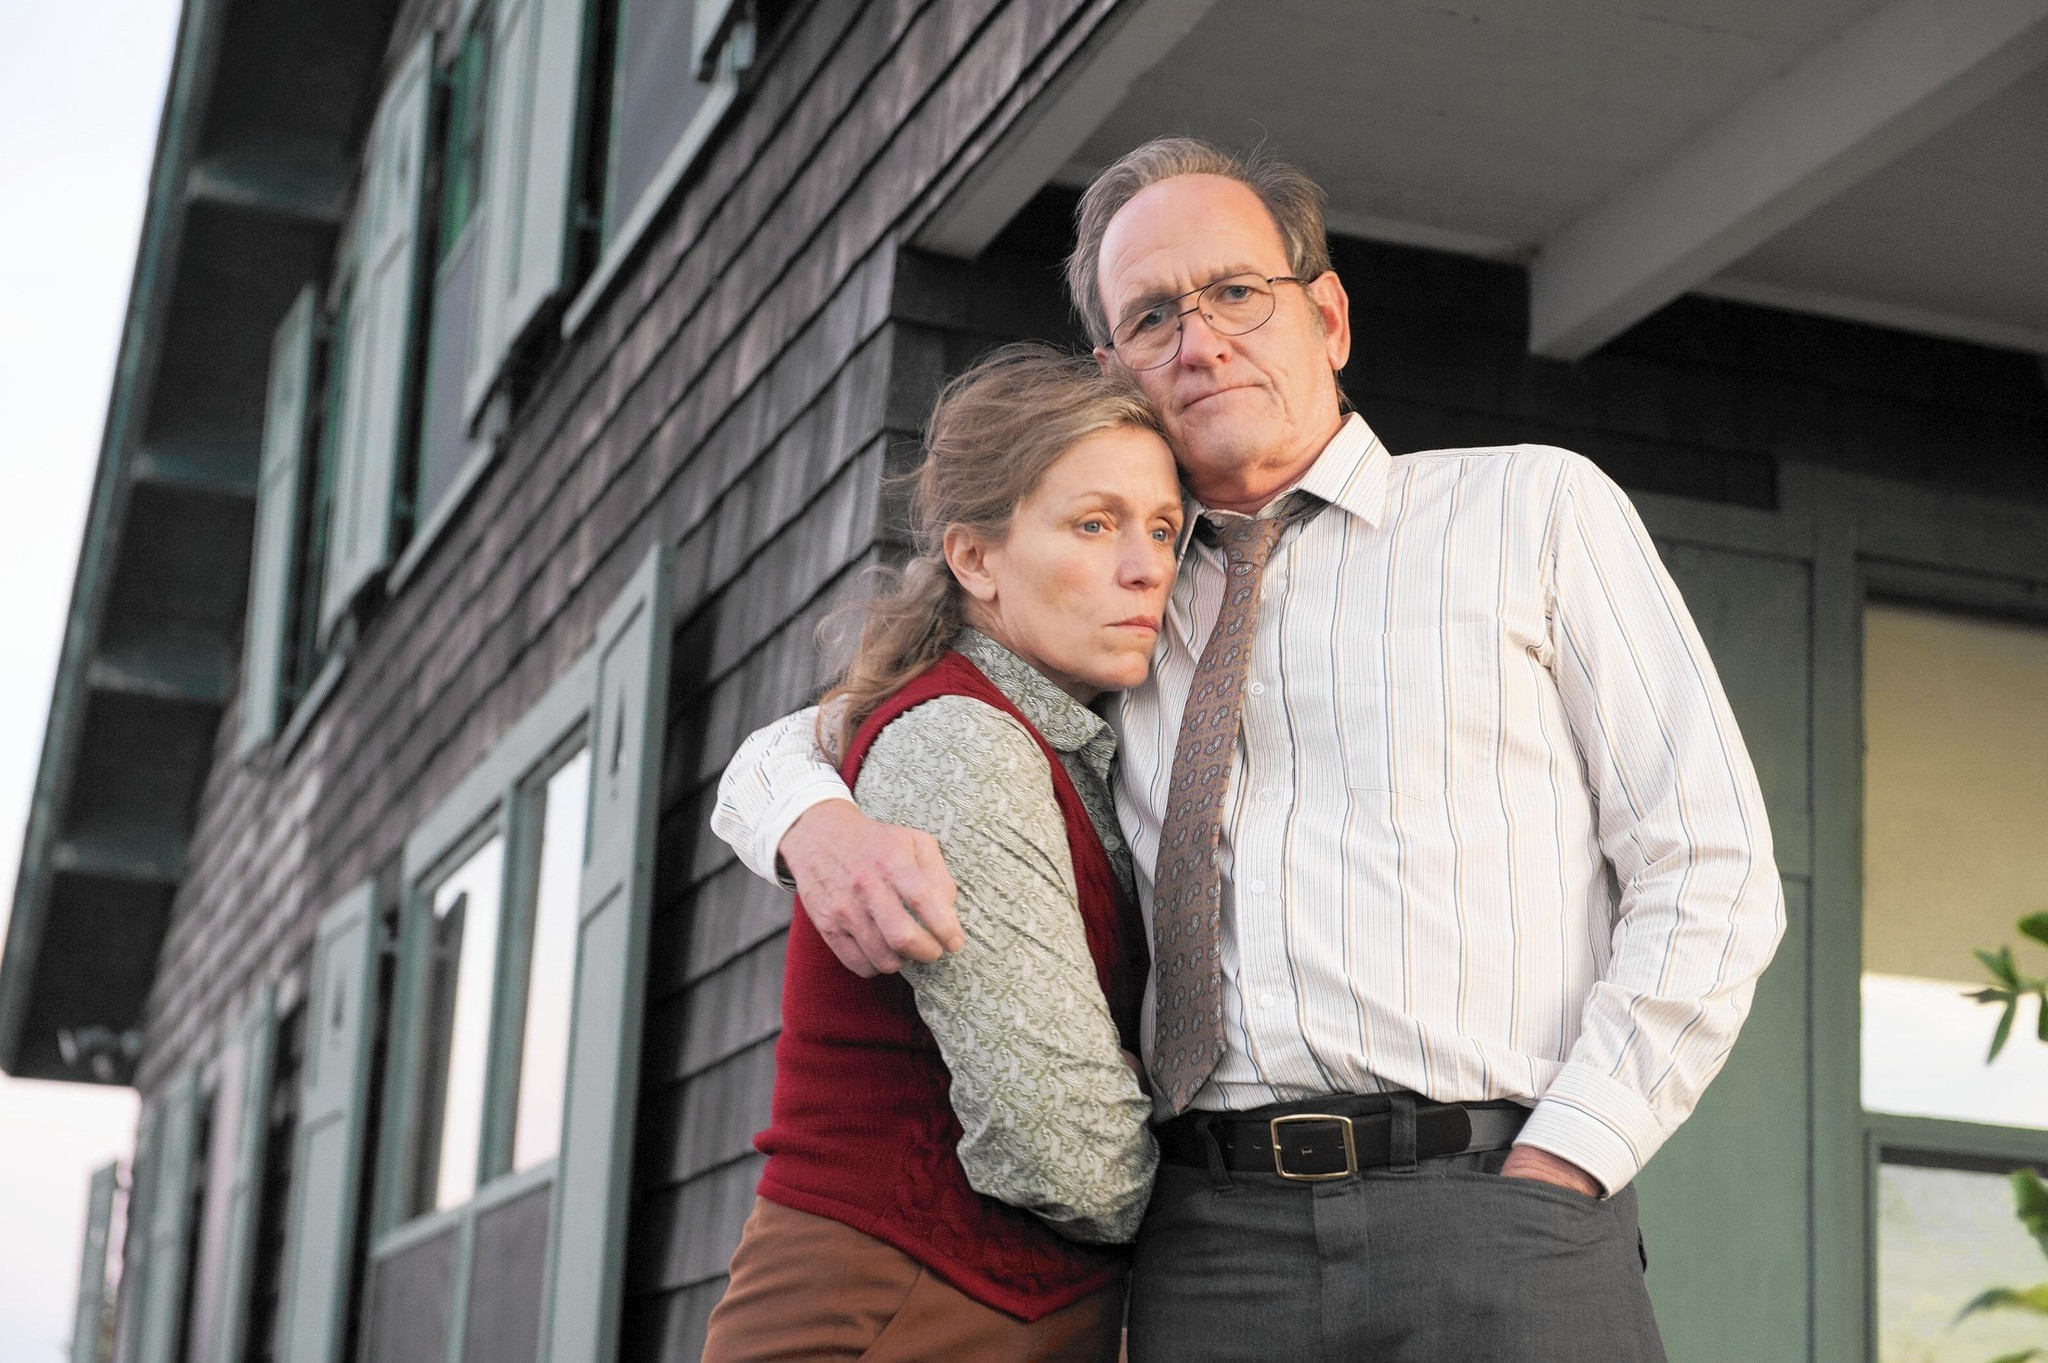 Frances McDormand and Richard Jenkins in